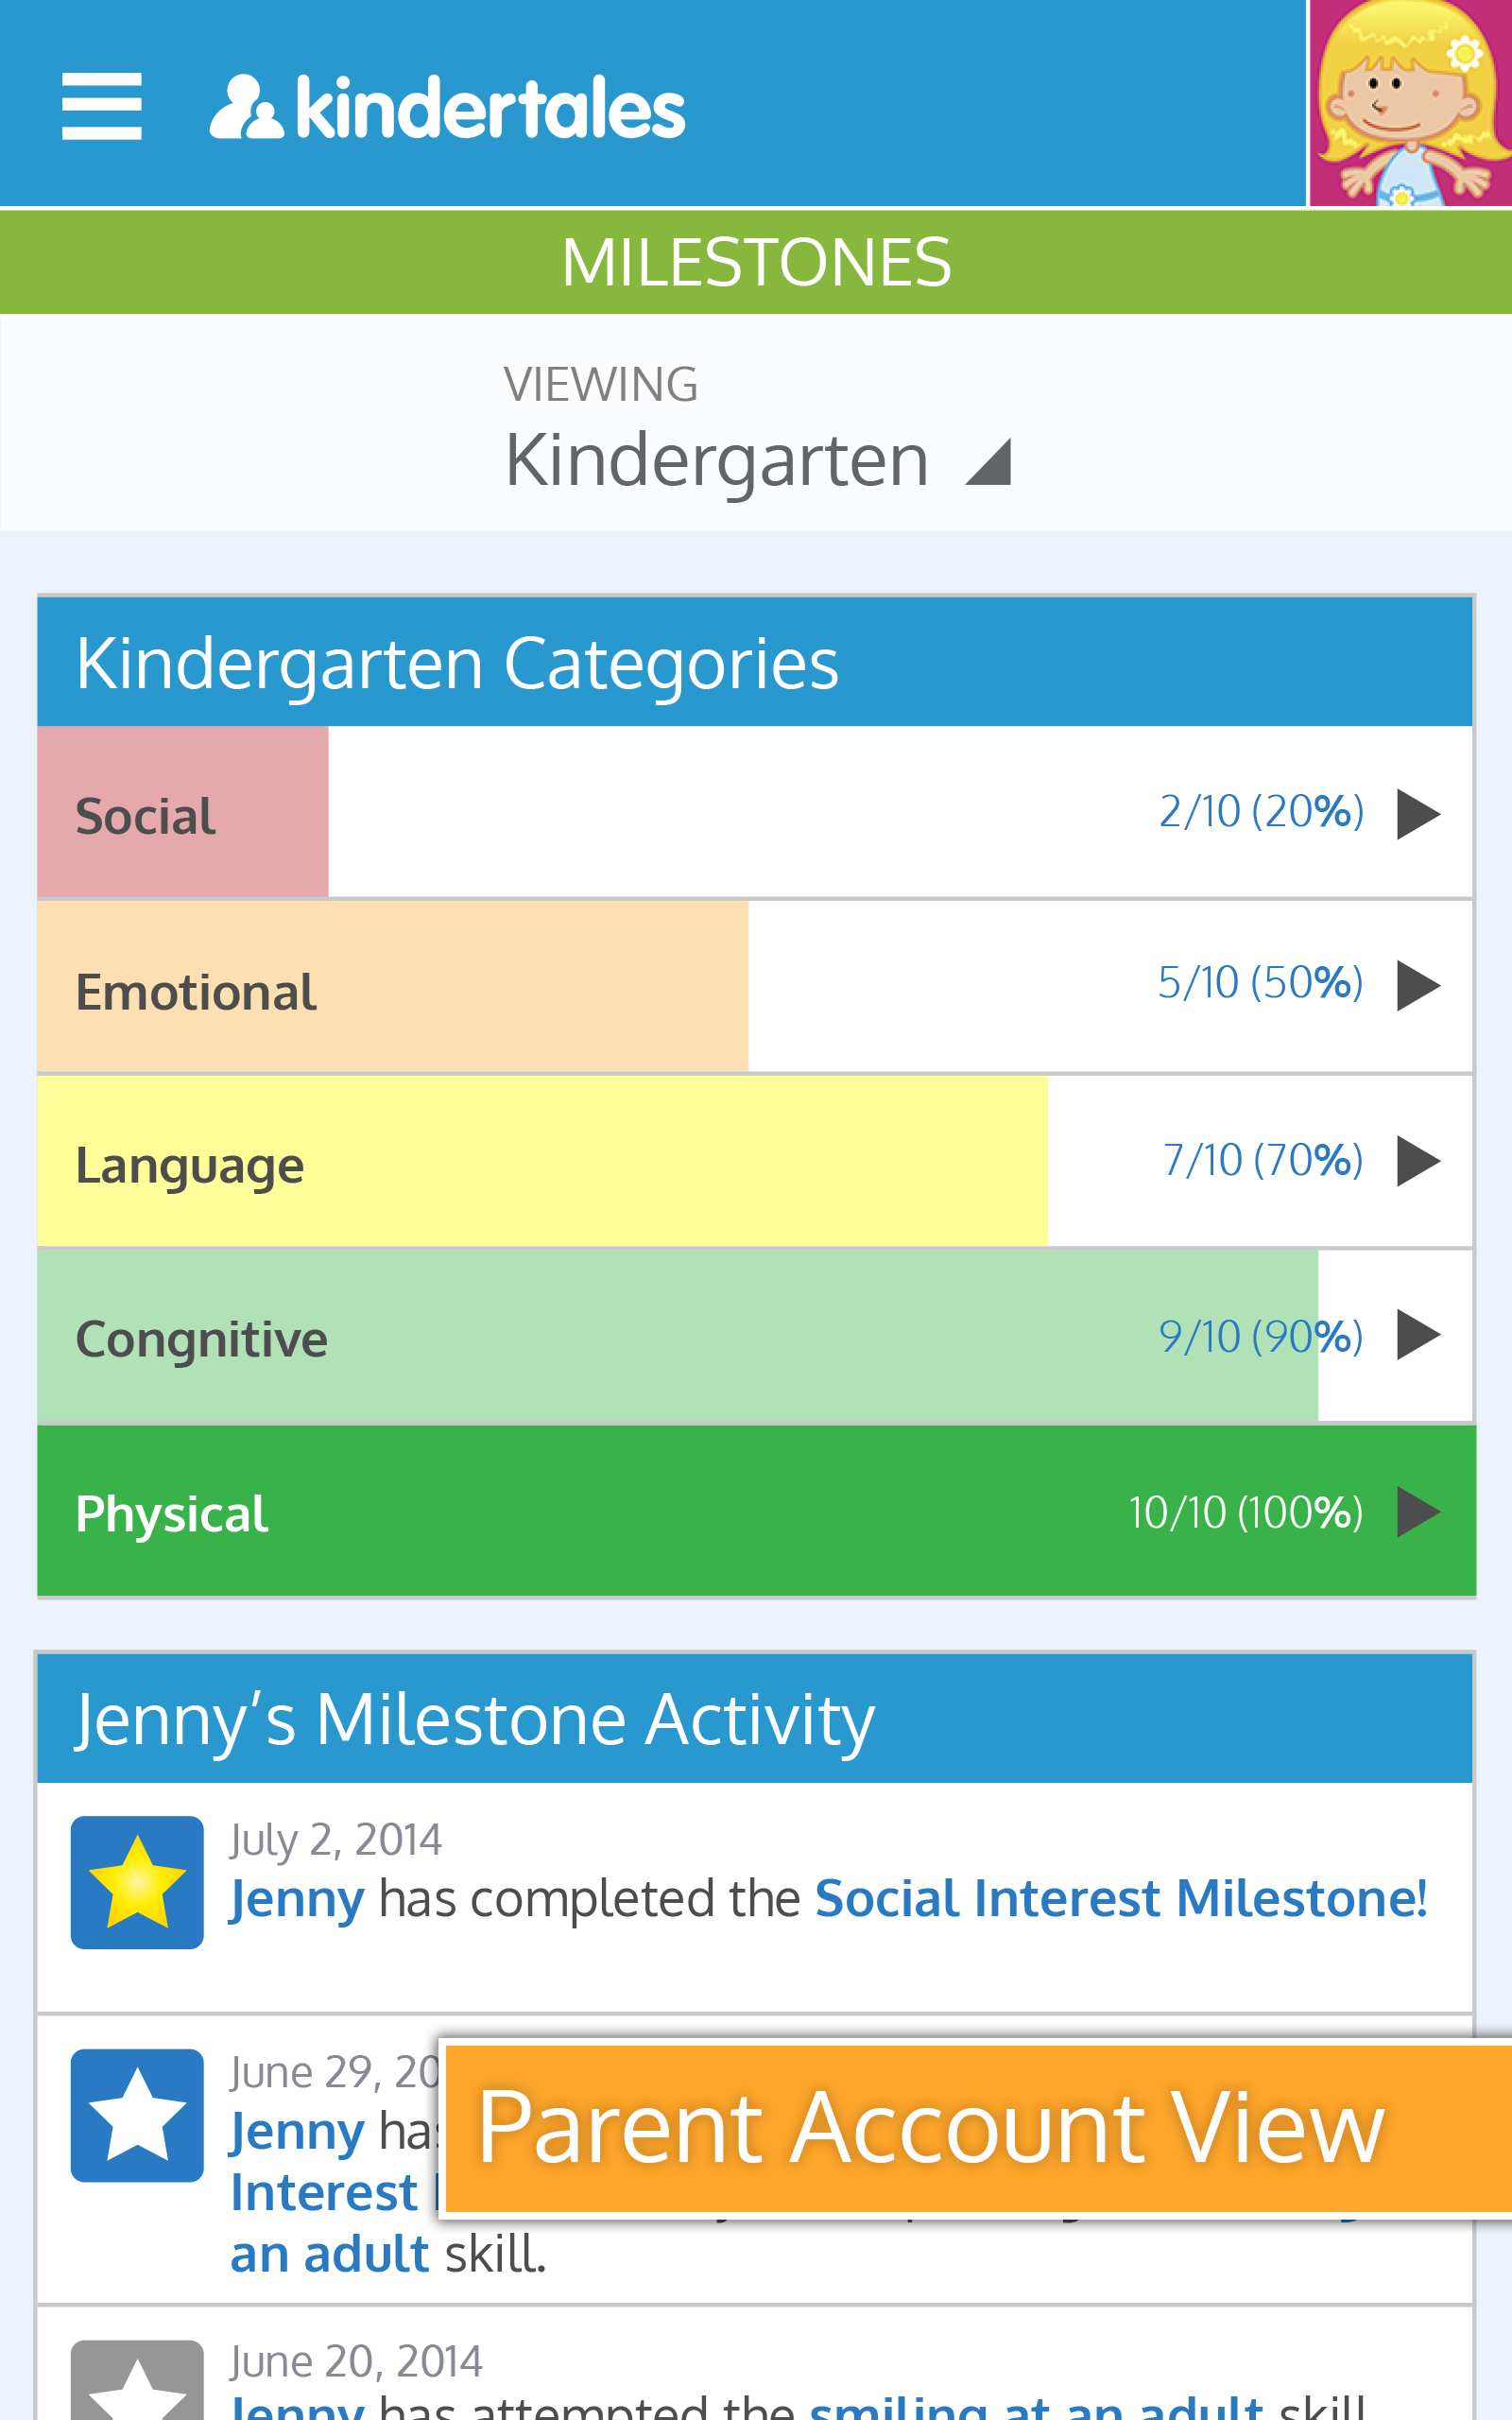 Amazon.com: Kindertales Childcare Management Software